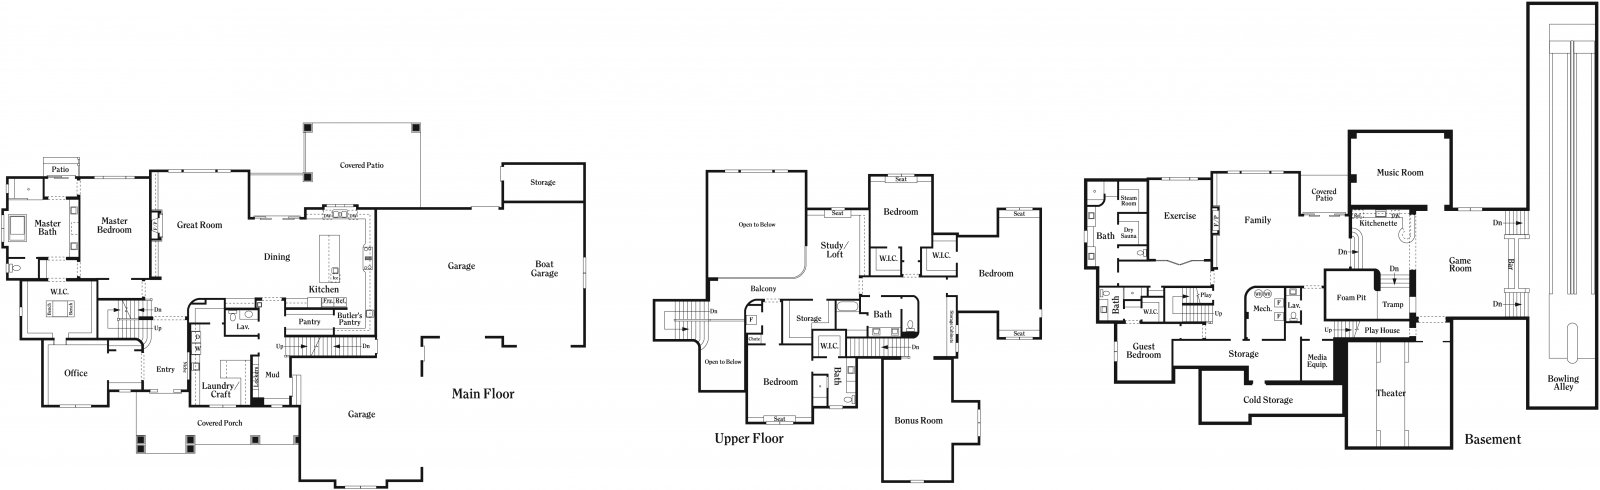 Utah parade of homes floor plans gurus floor for Utah home design plans